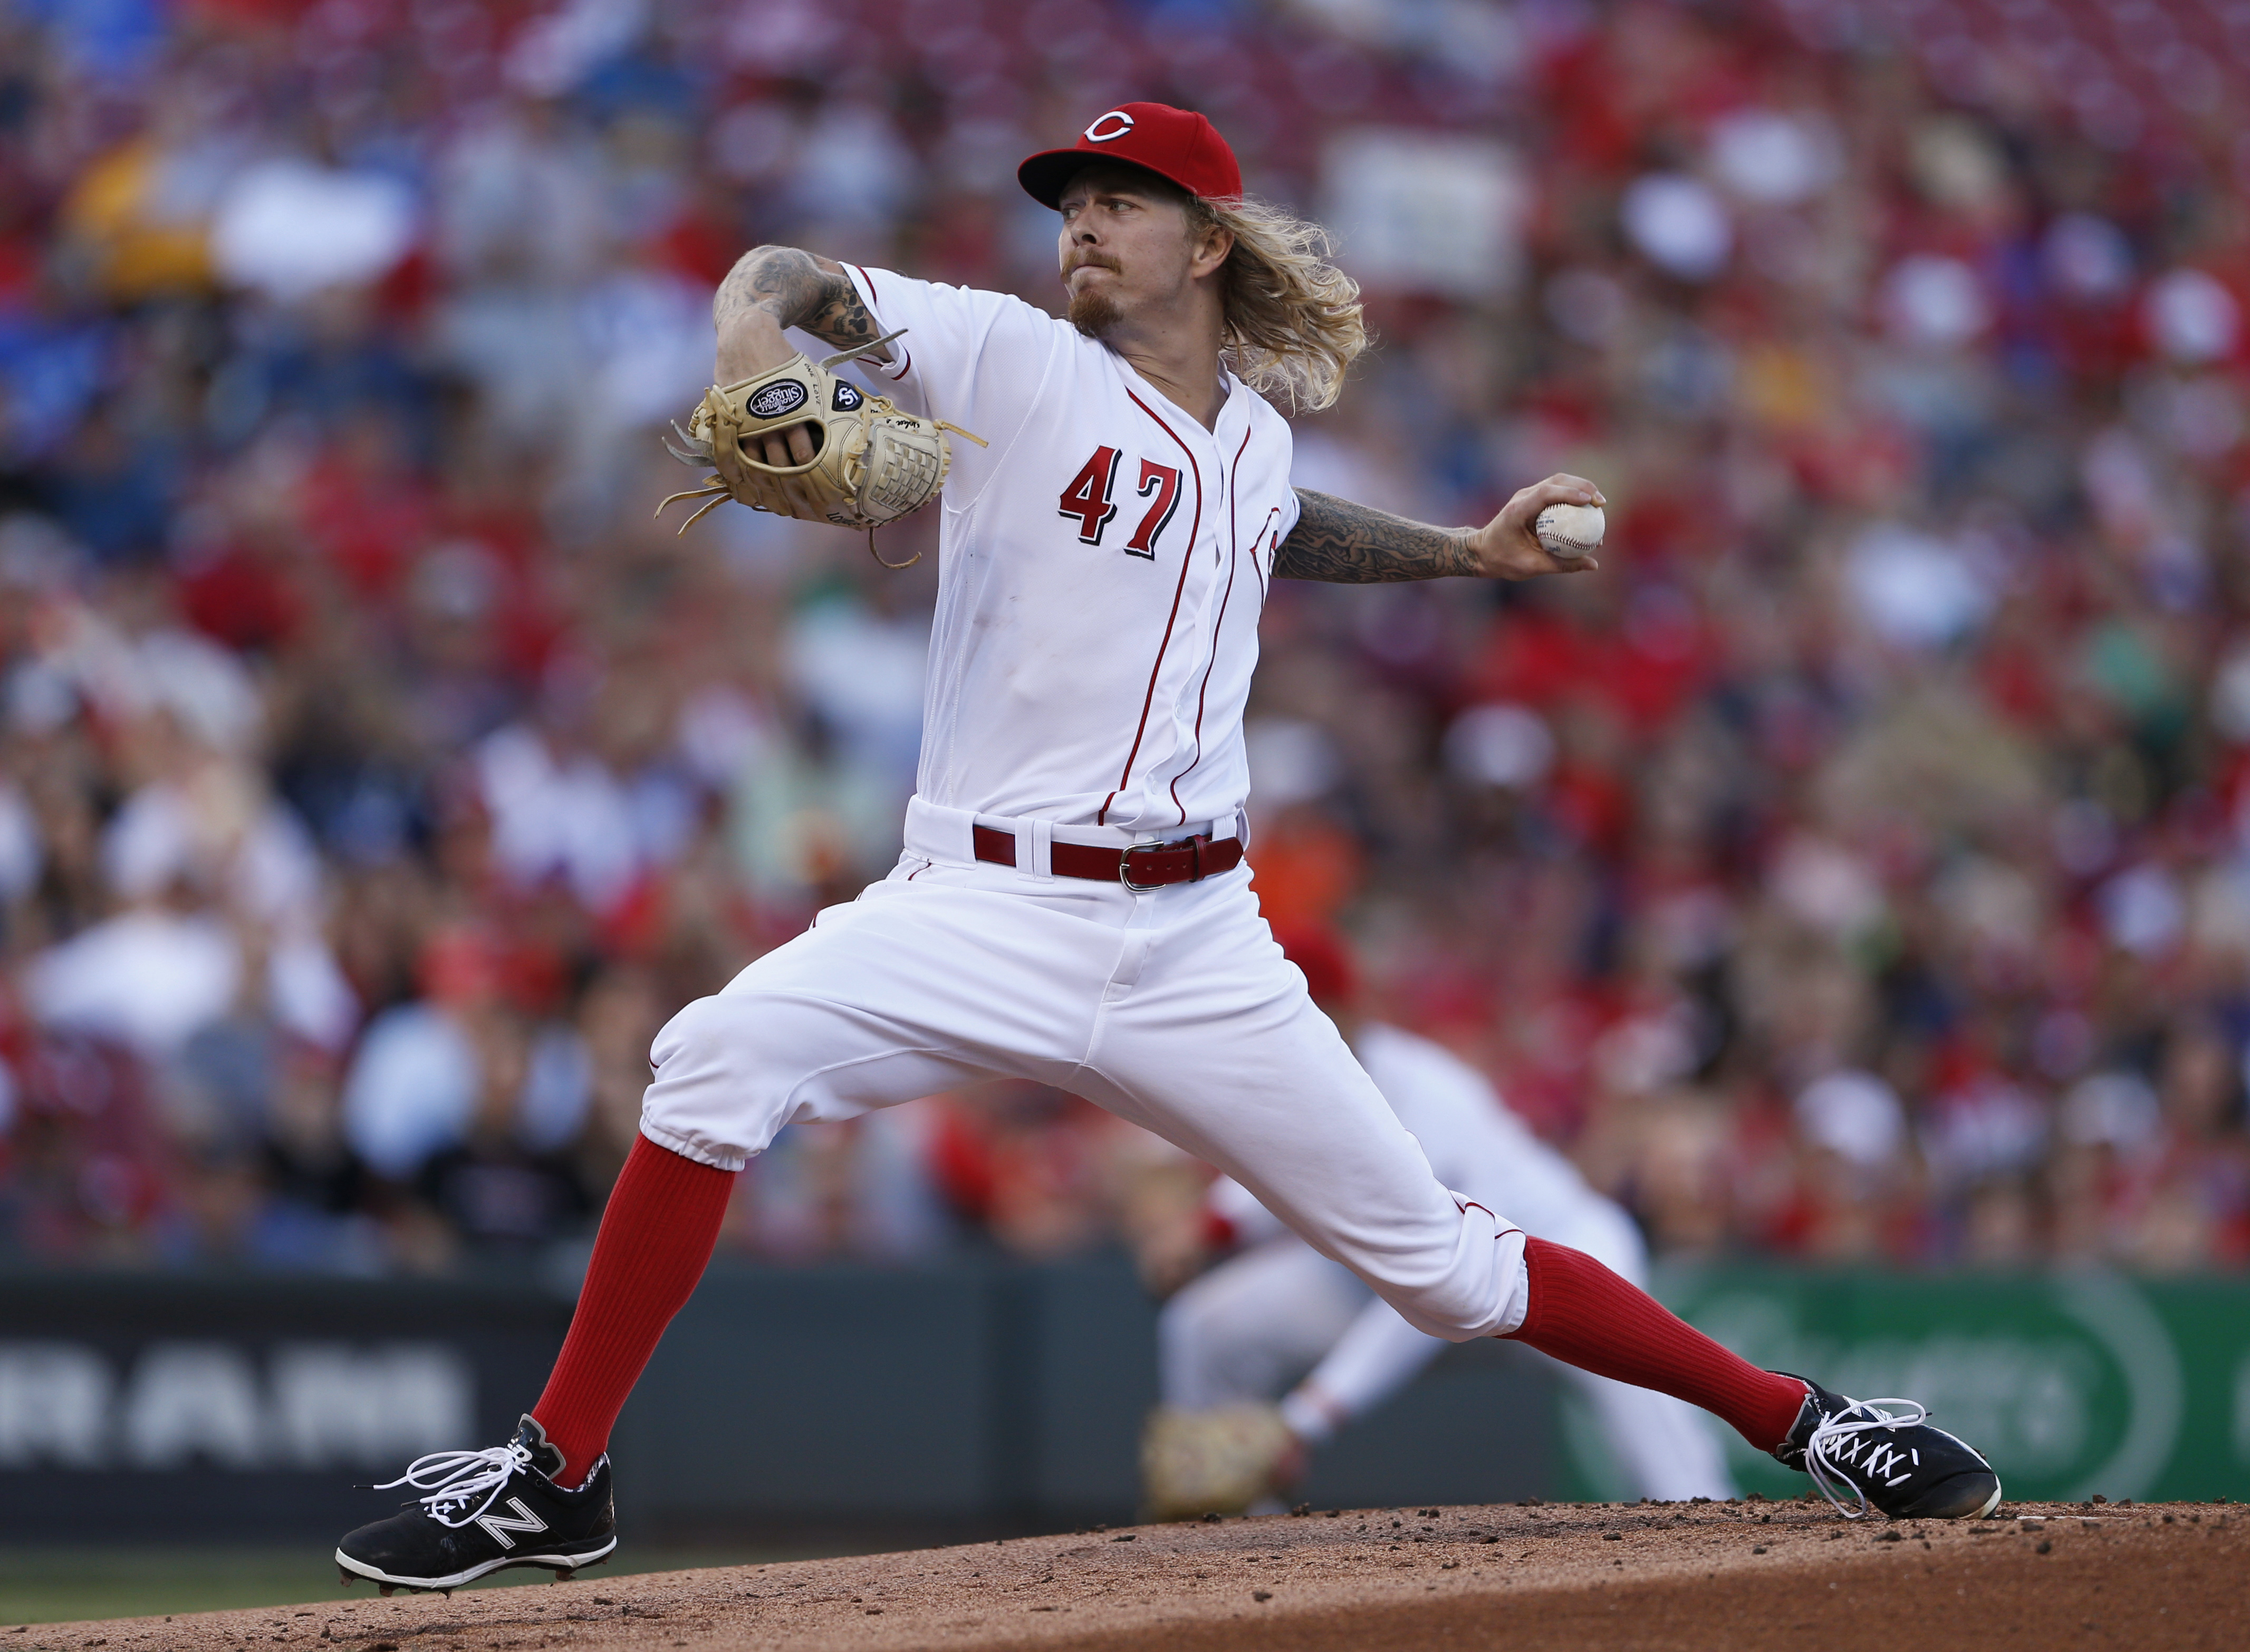 Cincinnati Reds starting pitcher John Lamb throws against the Milwaukee Brewers during the first inning of a baseball game, Saturday, July 16, 2016, in Cincinnati. (AP Photo/Gary Landers)